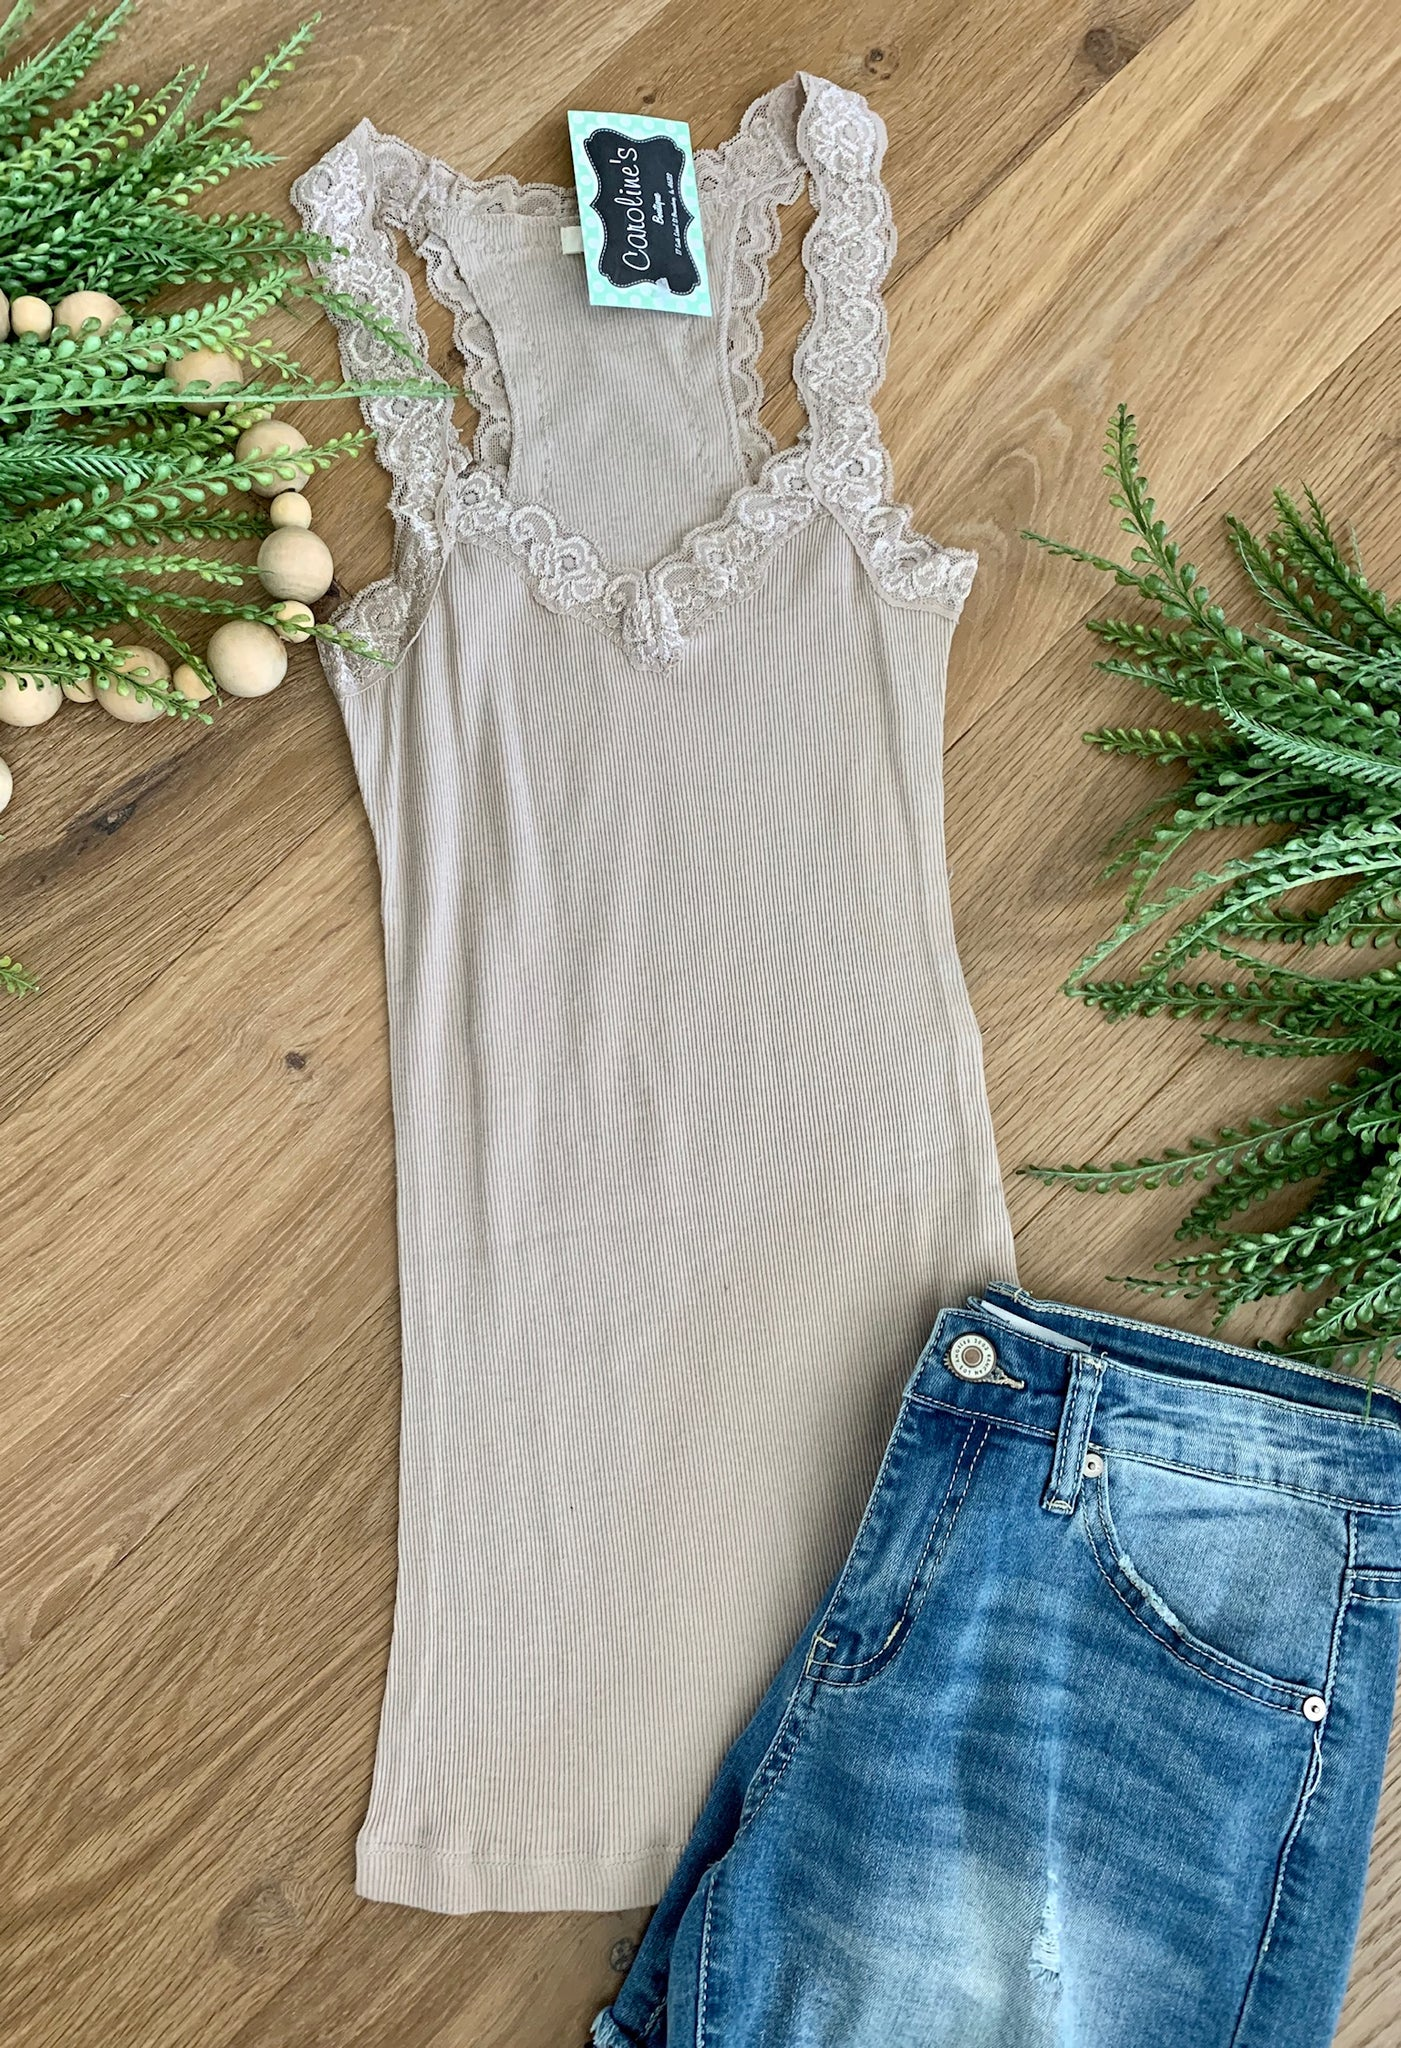 Slim Fit tank Mocha - Caroline's Boutique Indiana